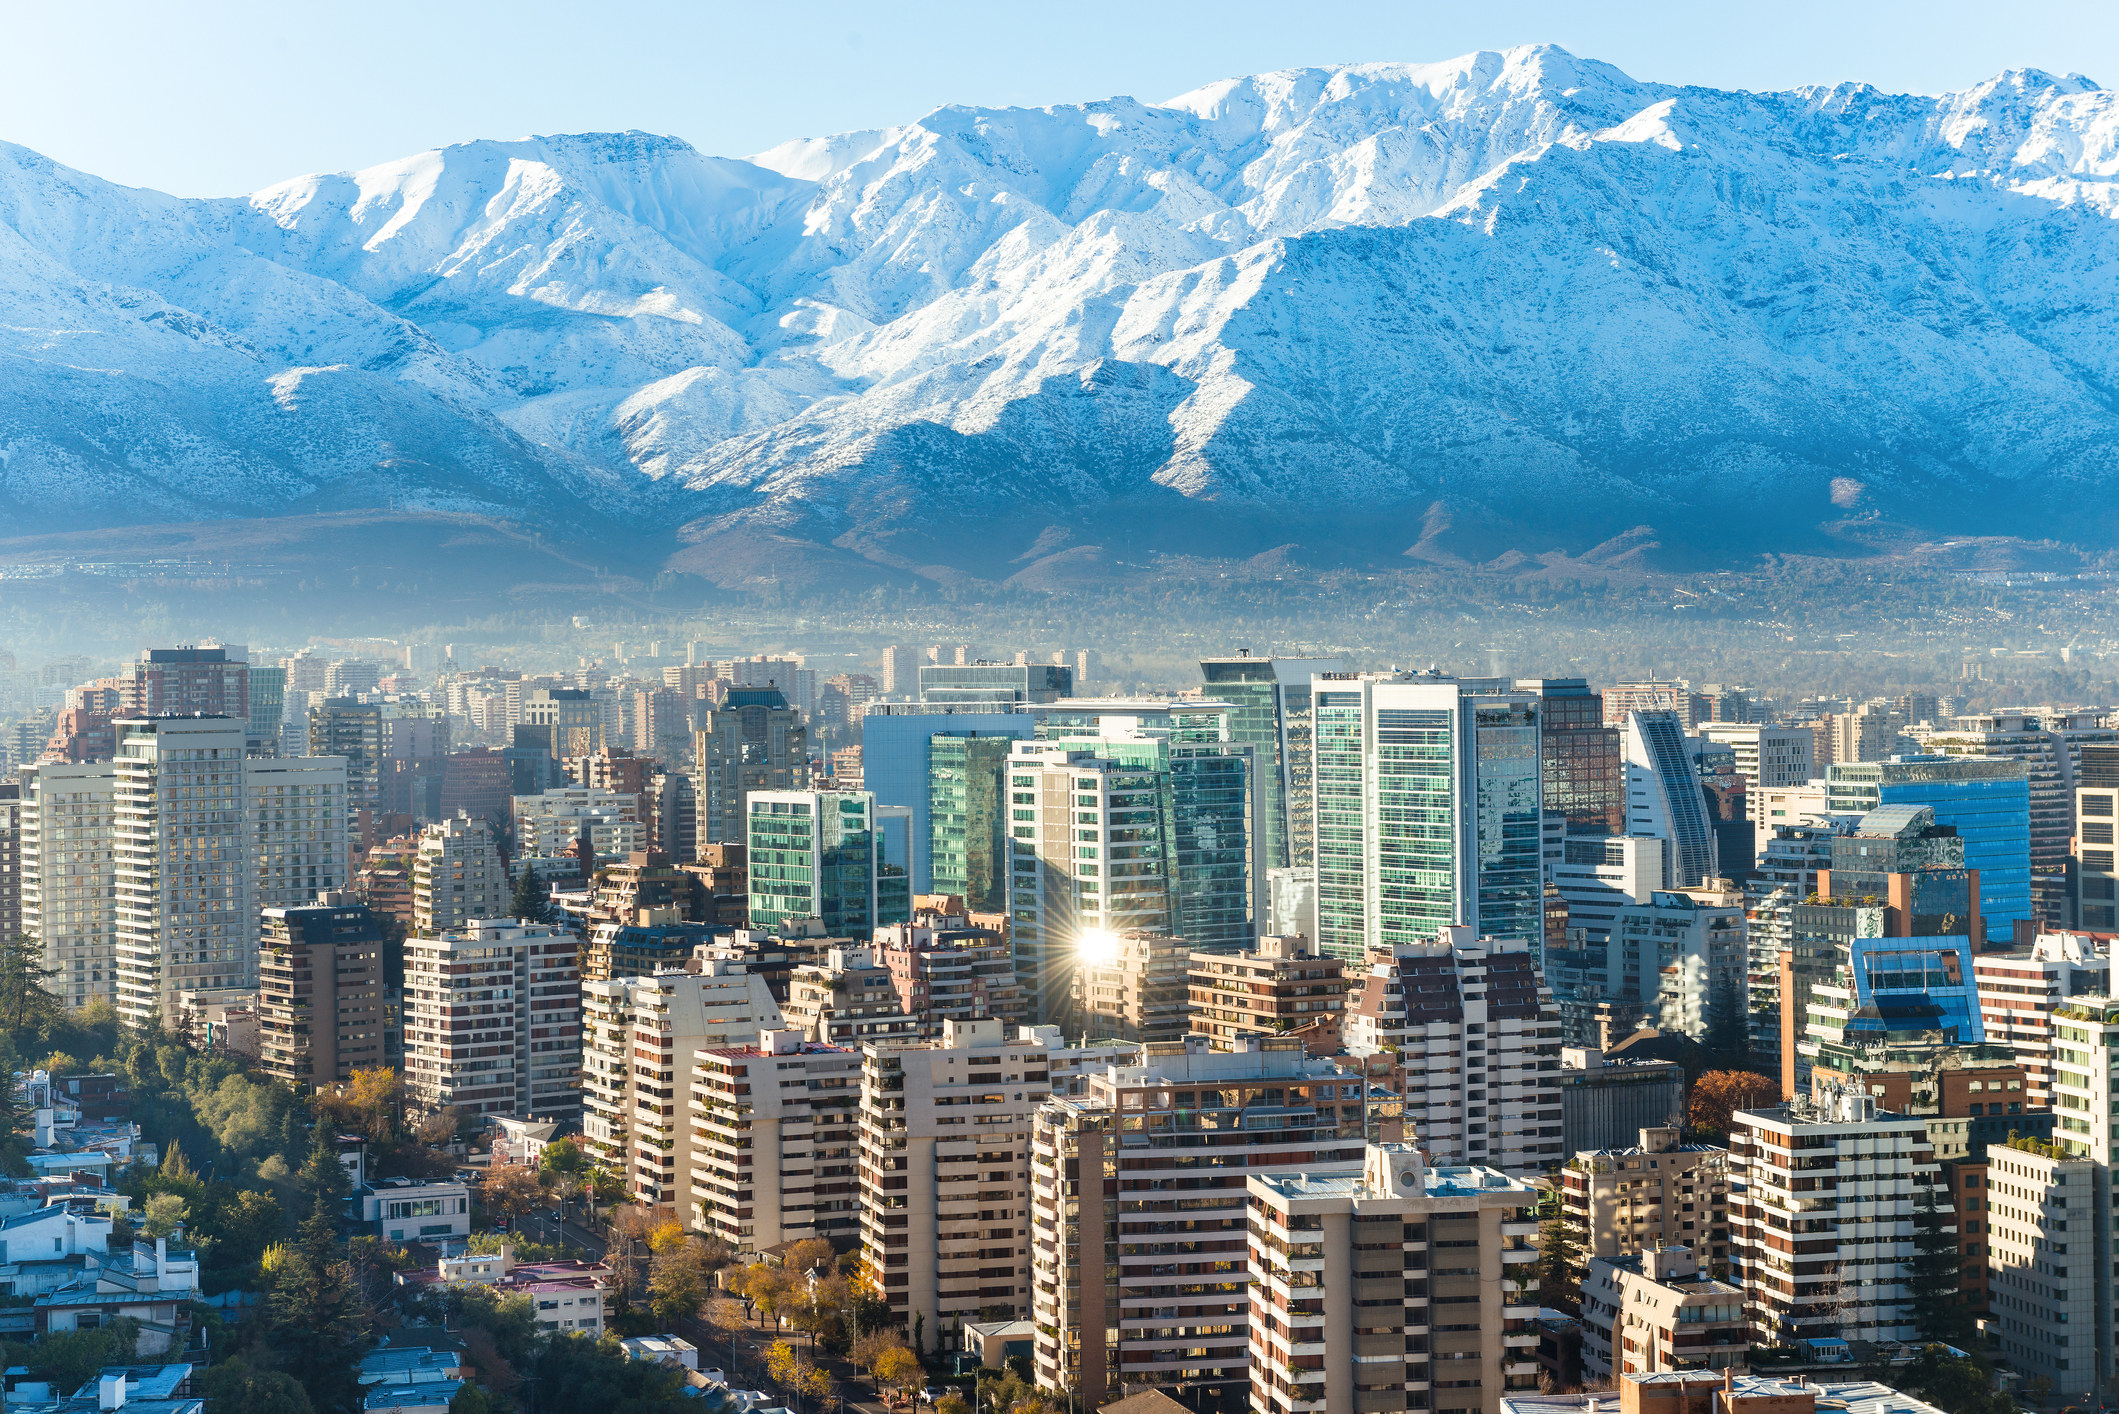 The city of Santiago nestled at the base of the mountains